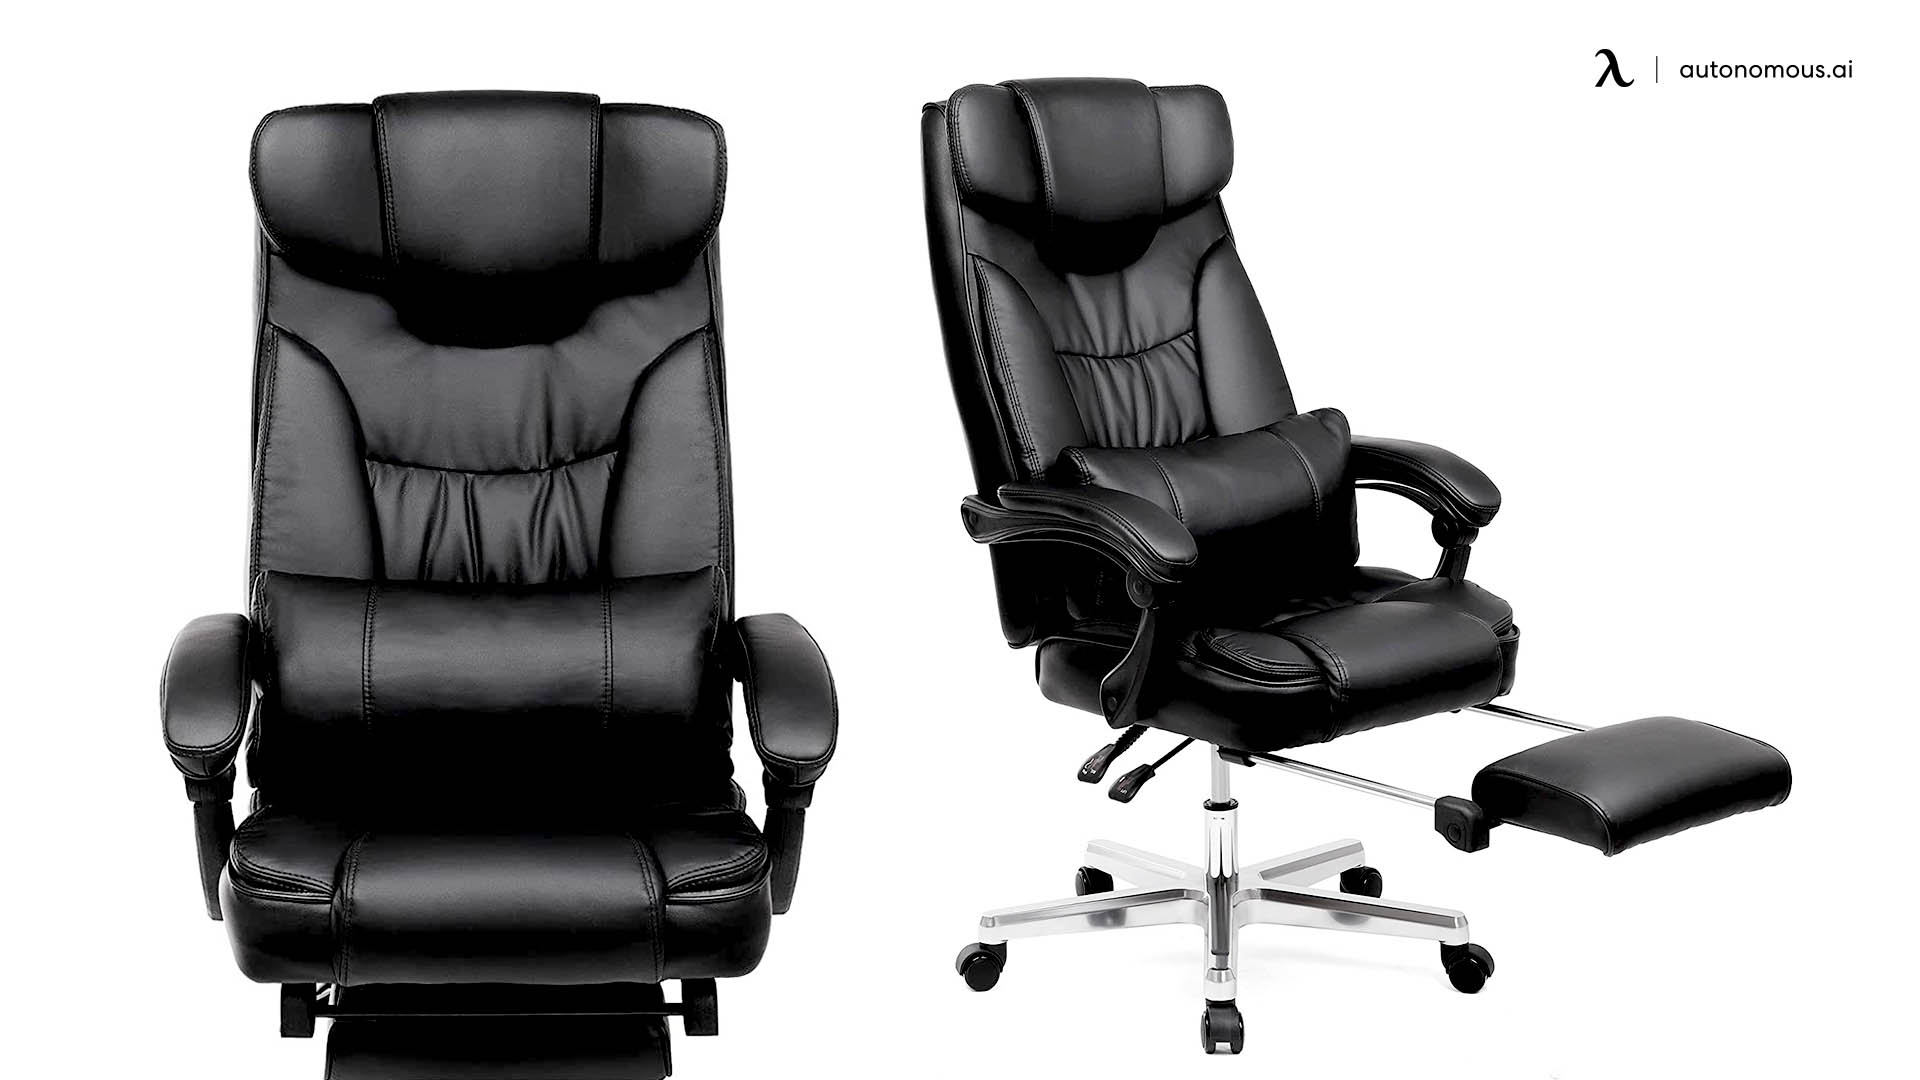 Songmics Reclining Office Chair with Footrest